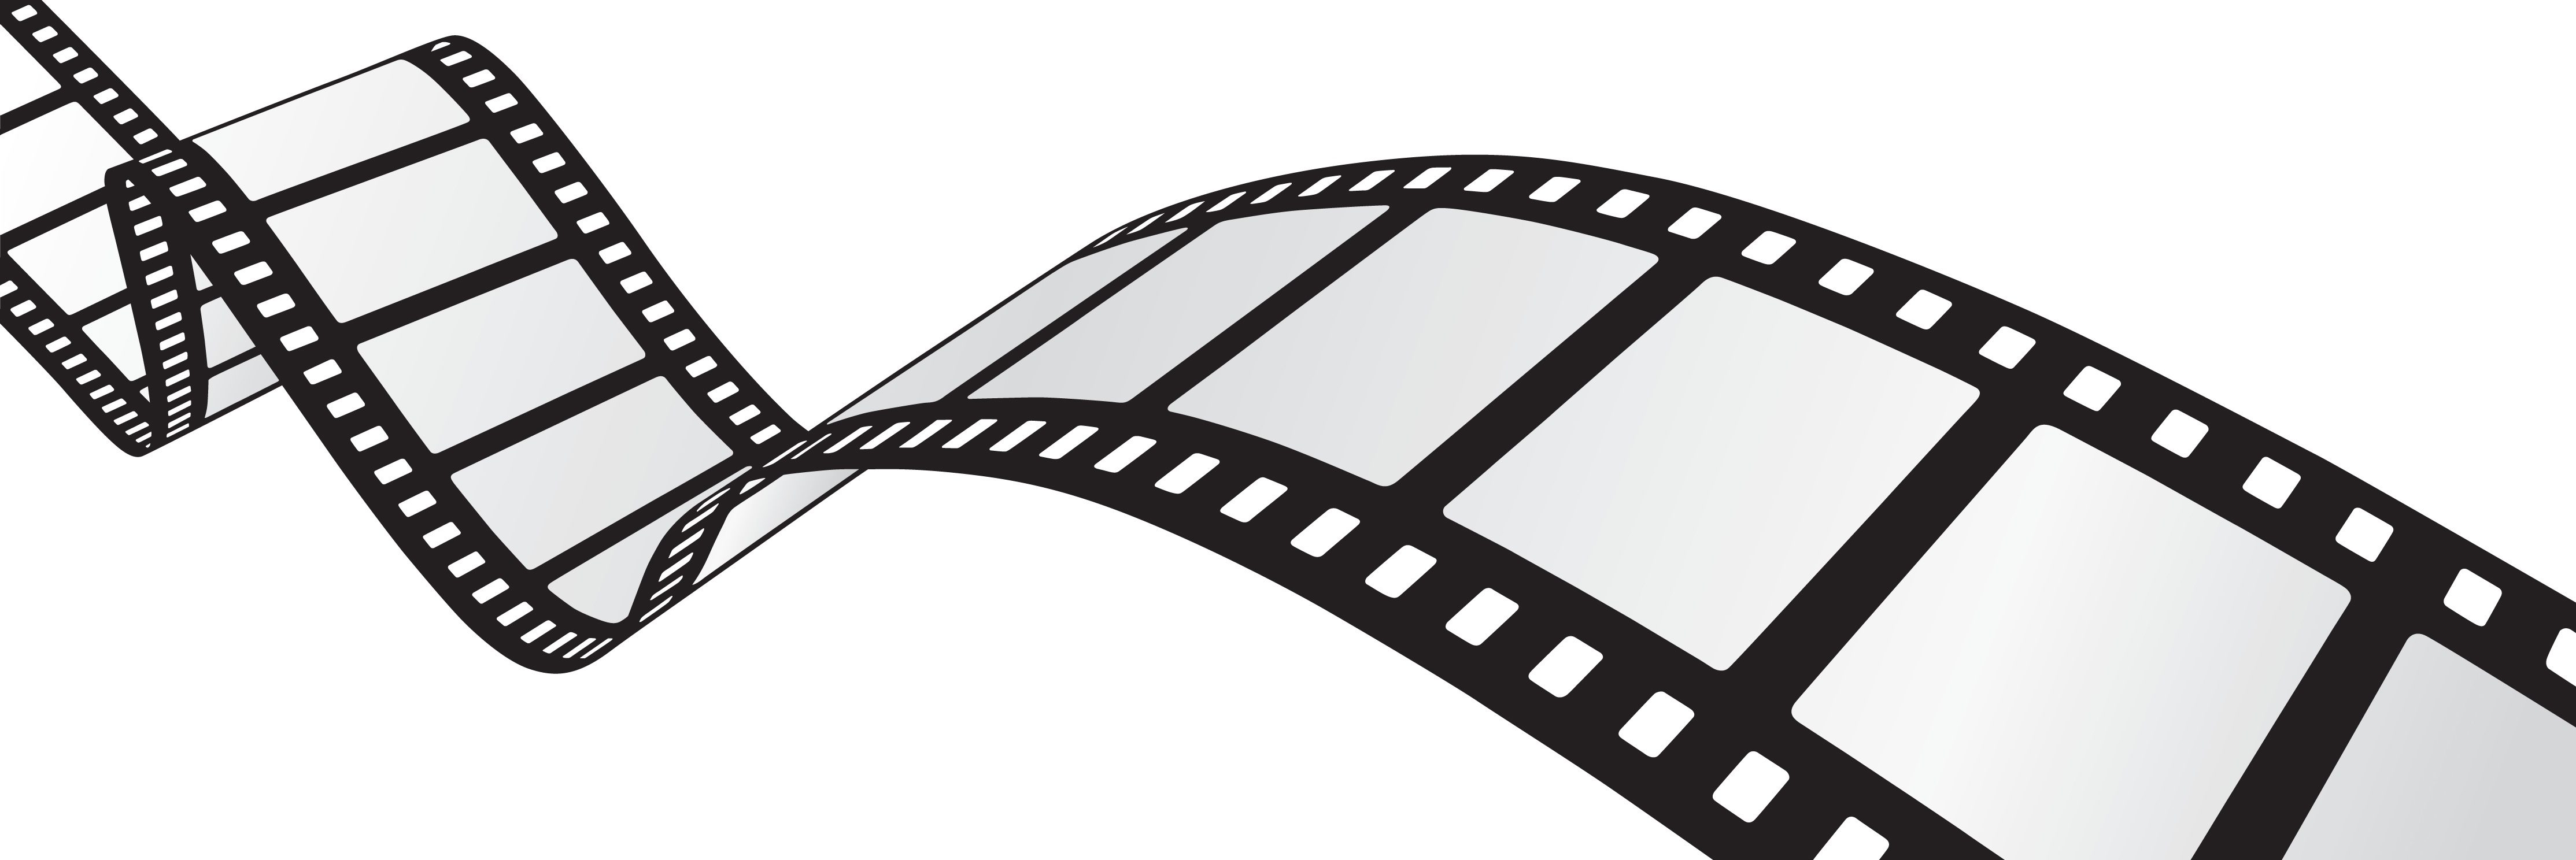 I write about mainly. Film clipart stuff